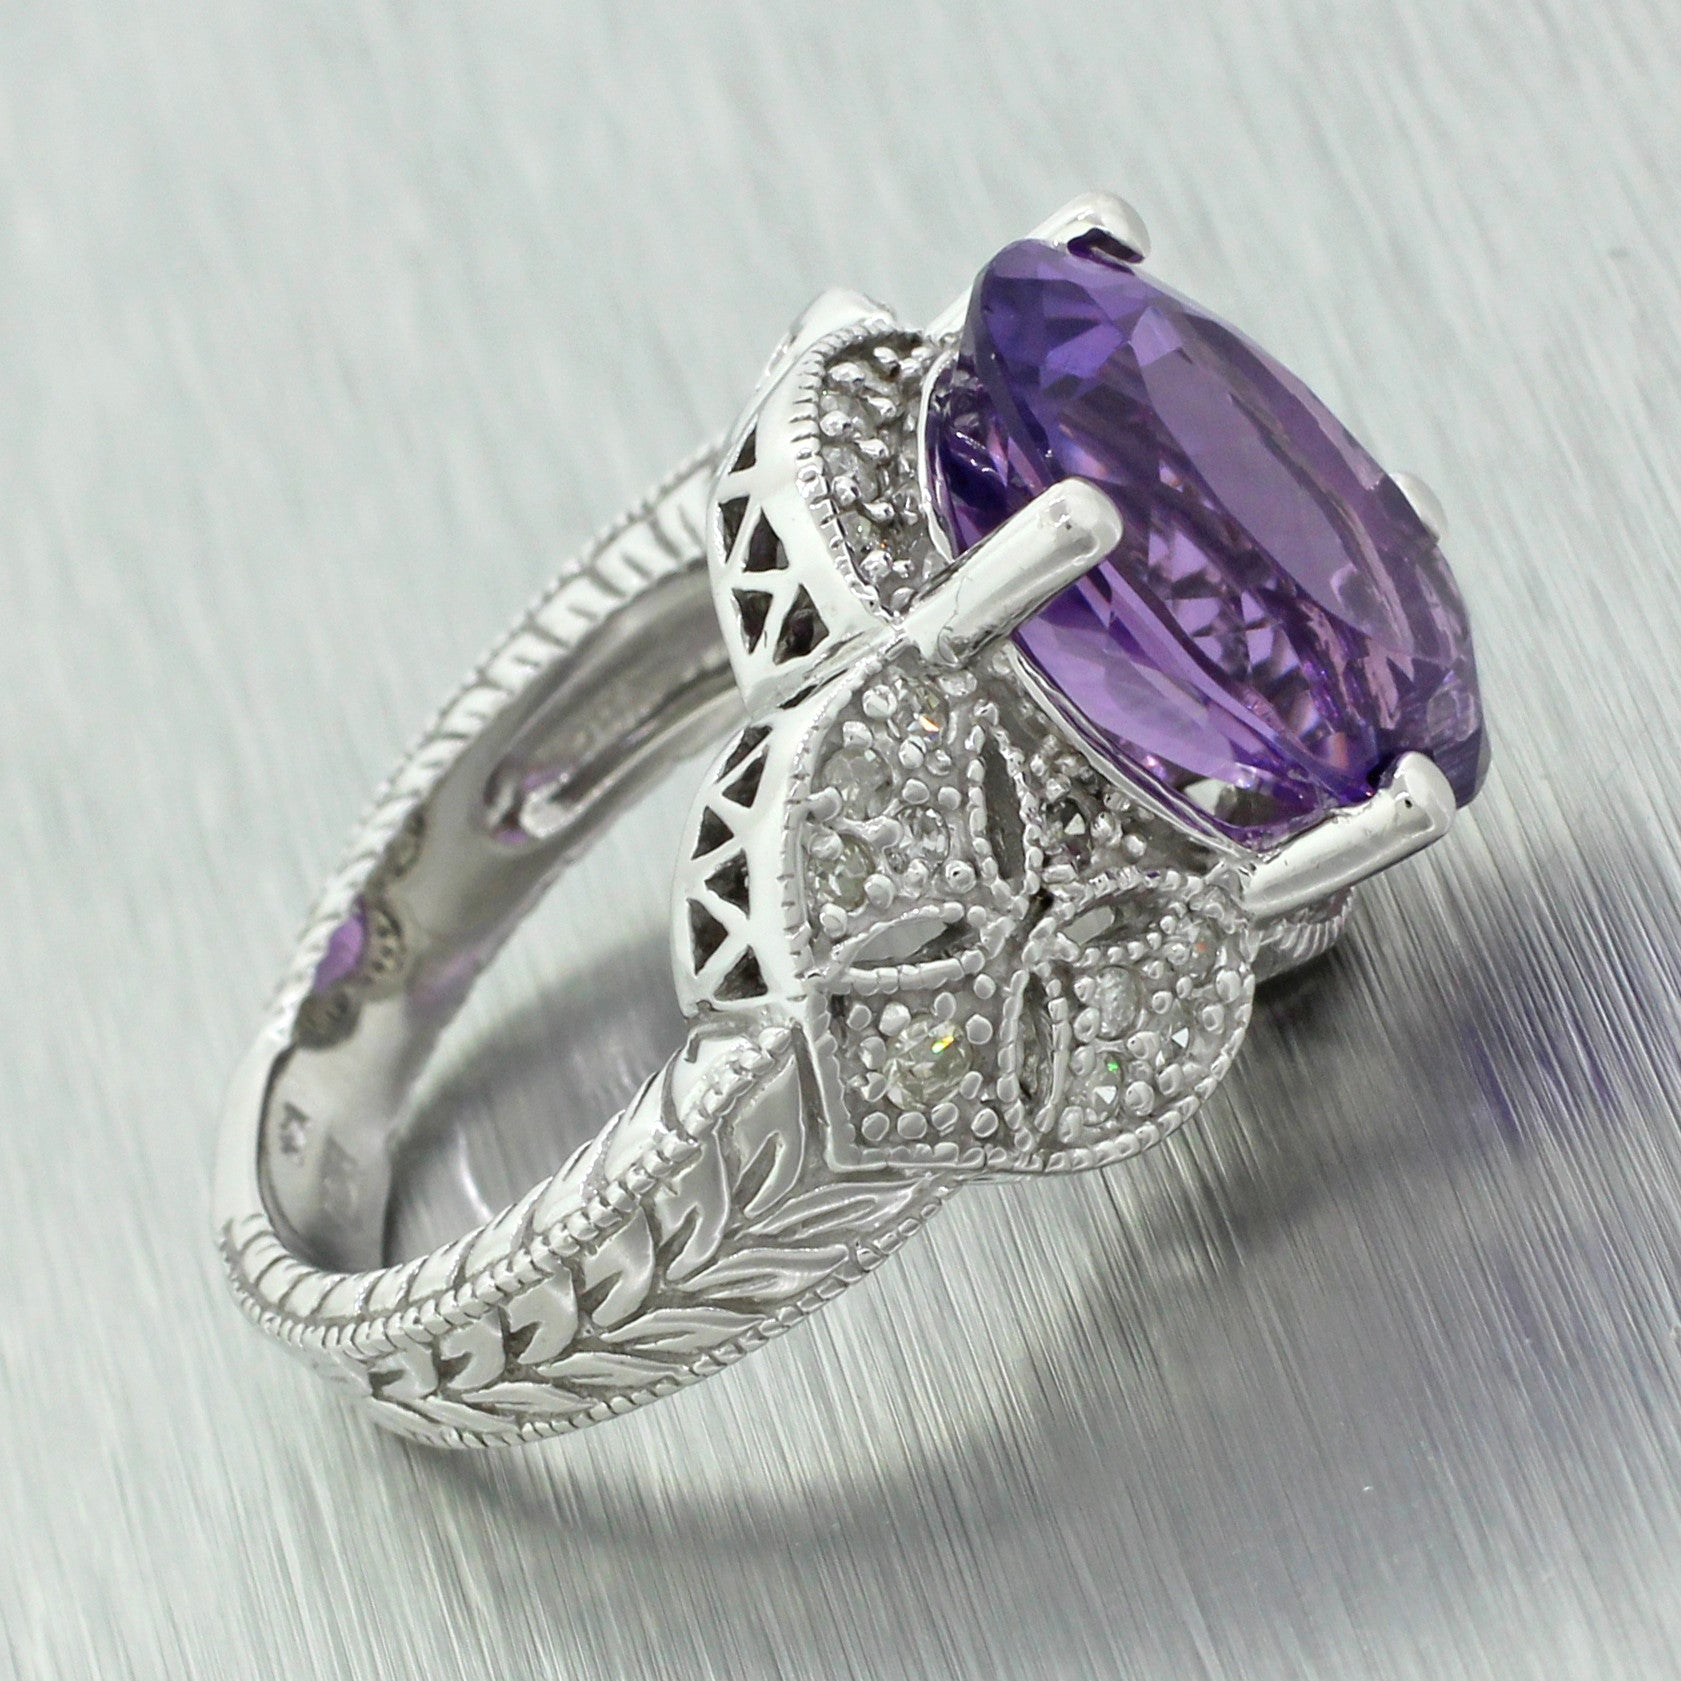 Vintage Estate 14k Solid White Gold Amethyst & Diamond Cocktail Ring